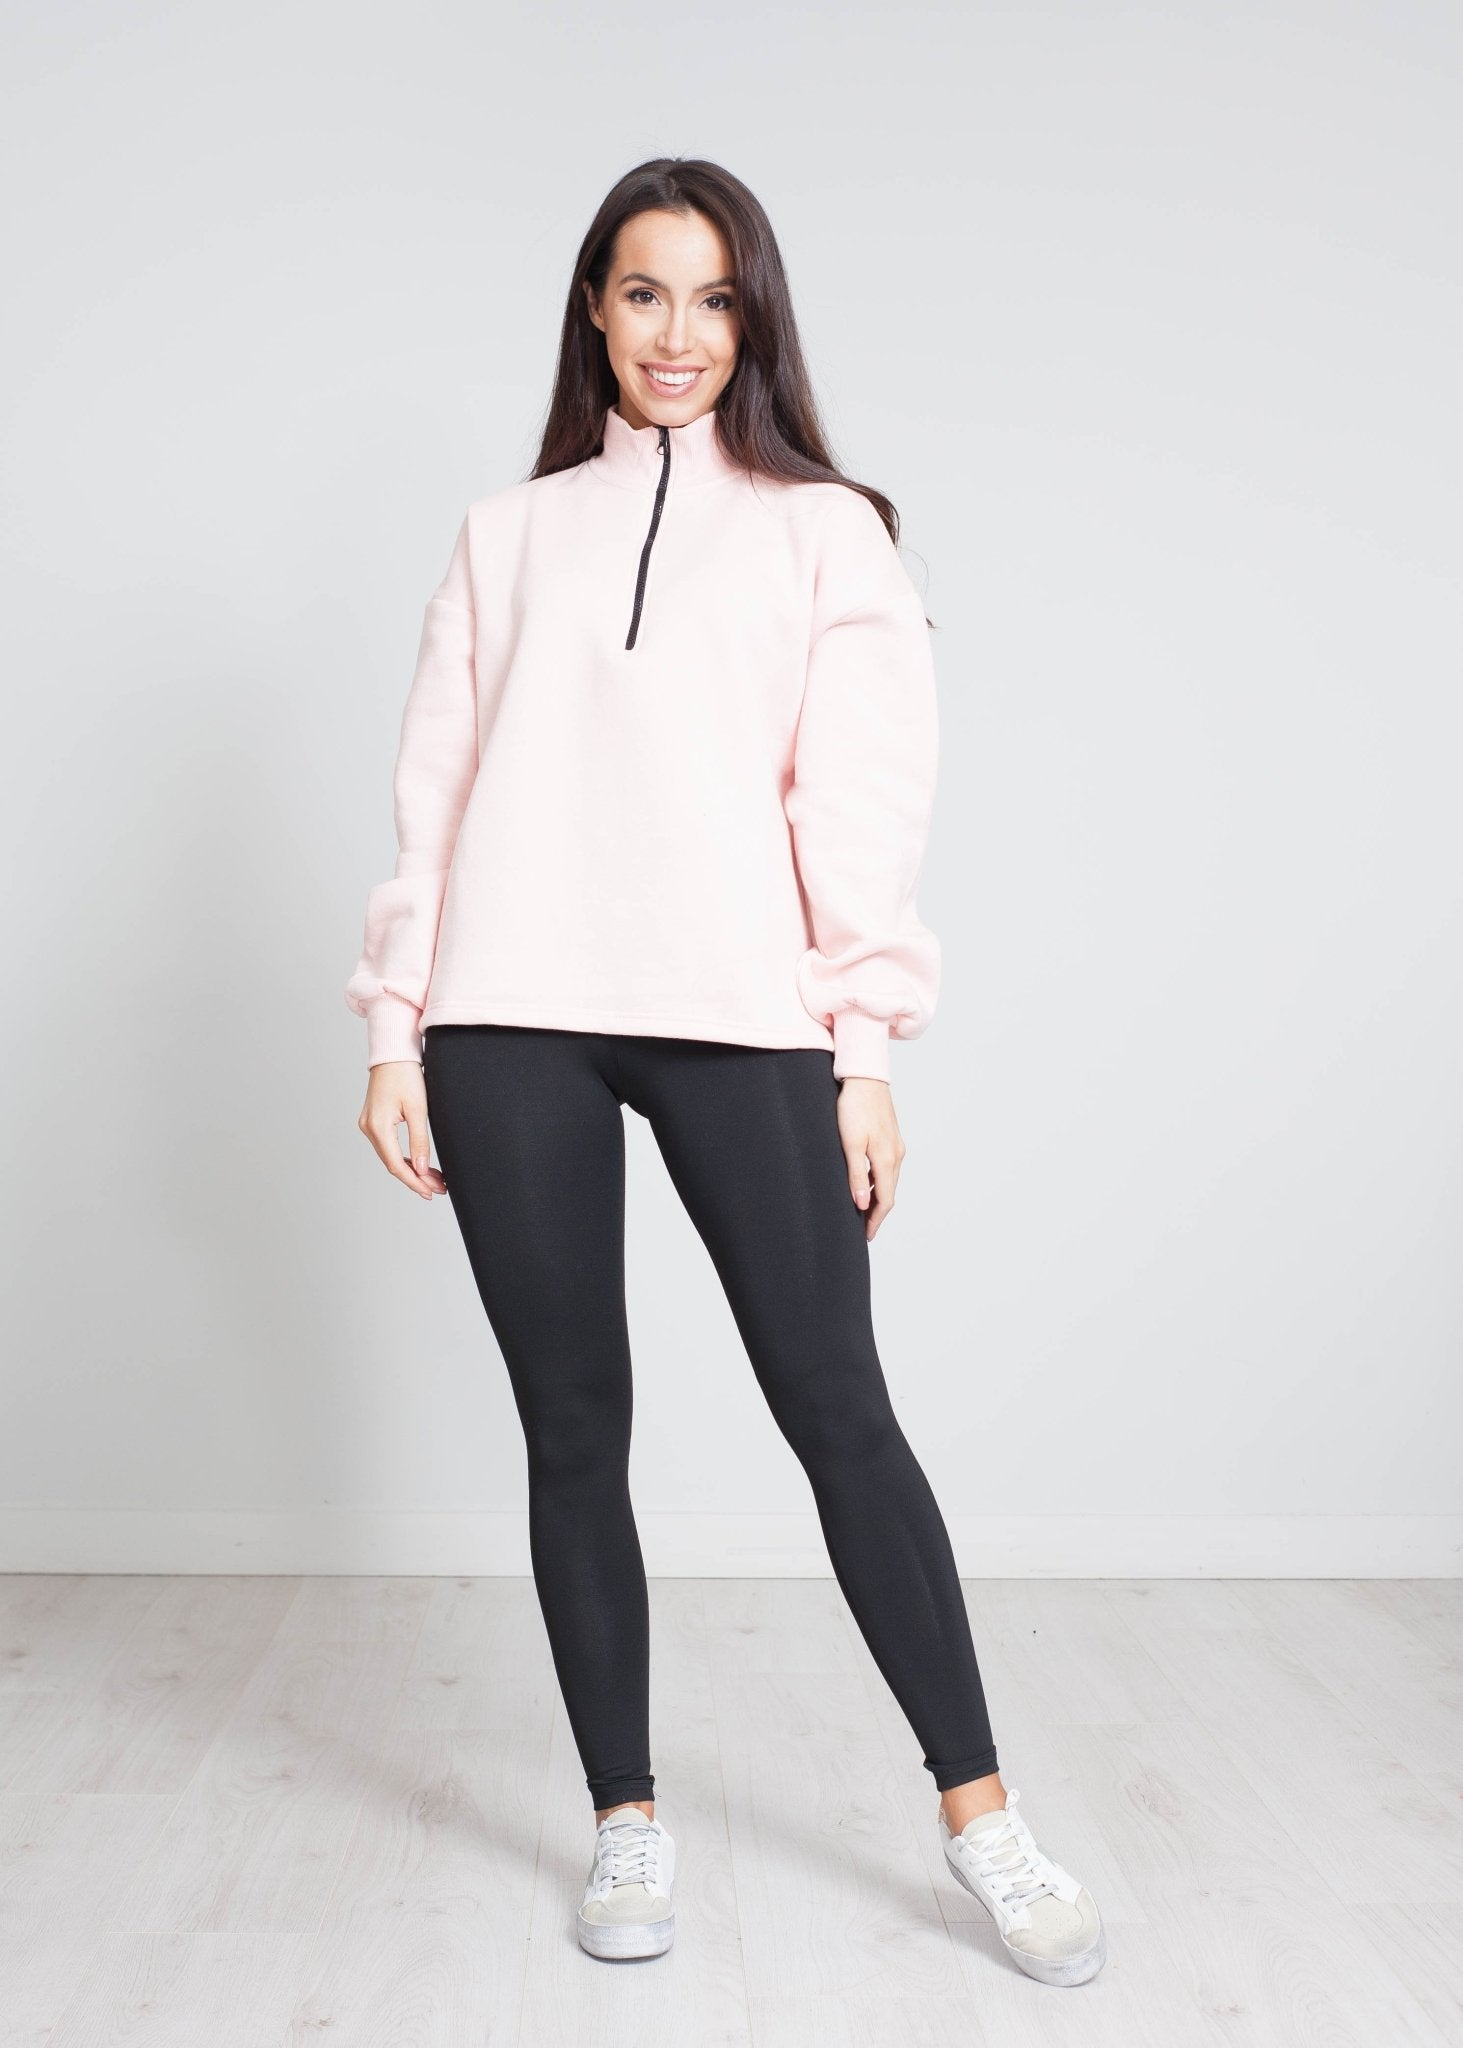 Stella Half Zip Sweatshirt In Pink - The Walk in Wardrobe